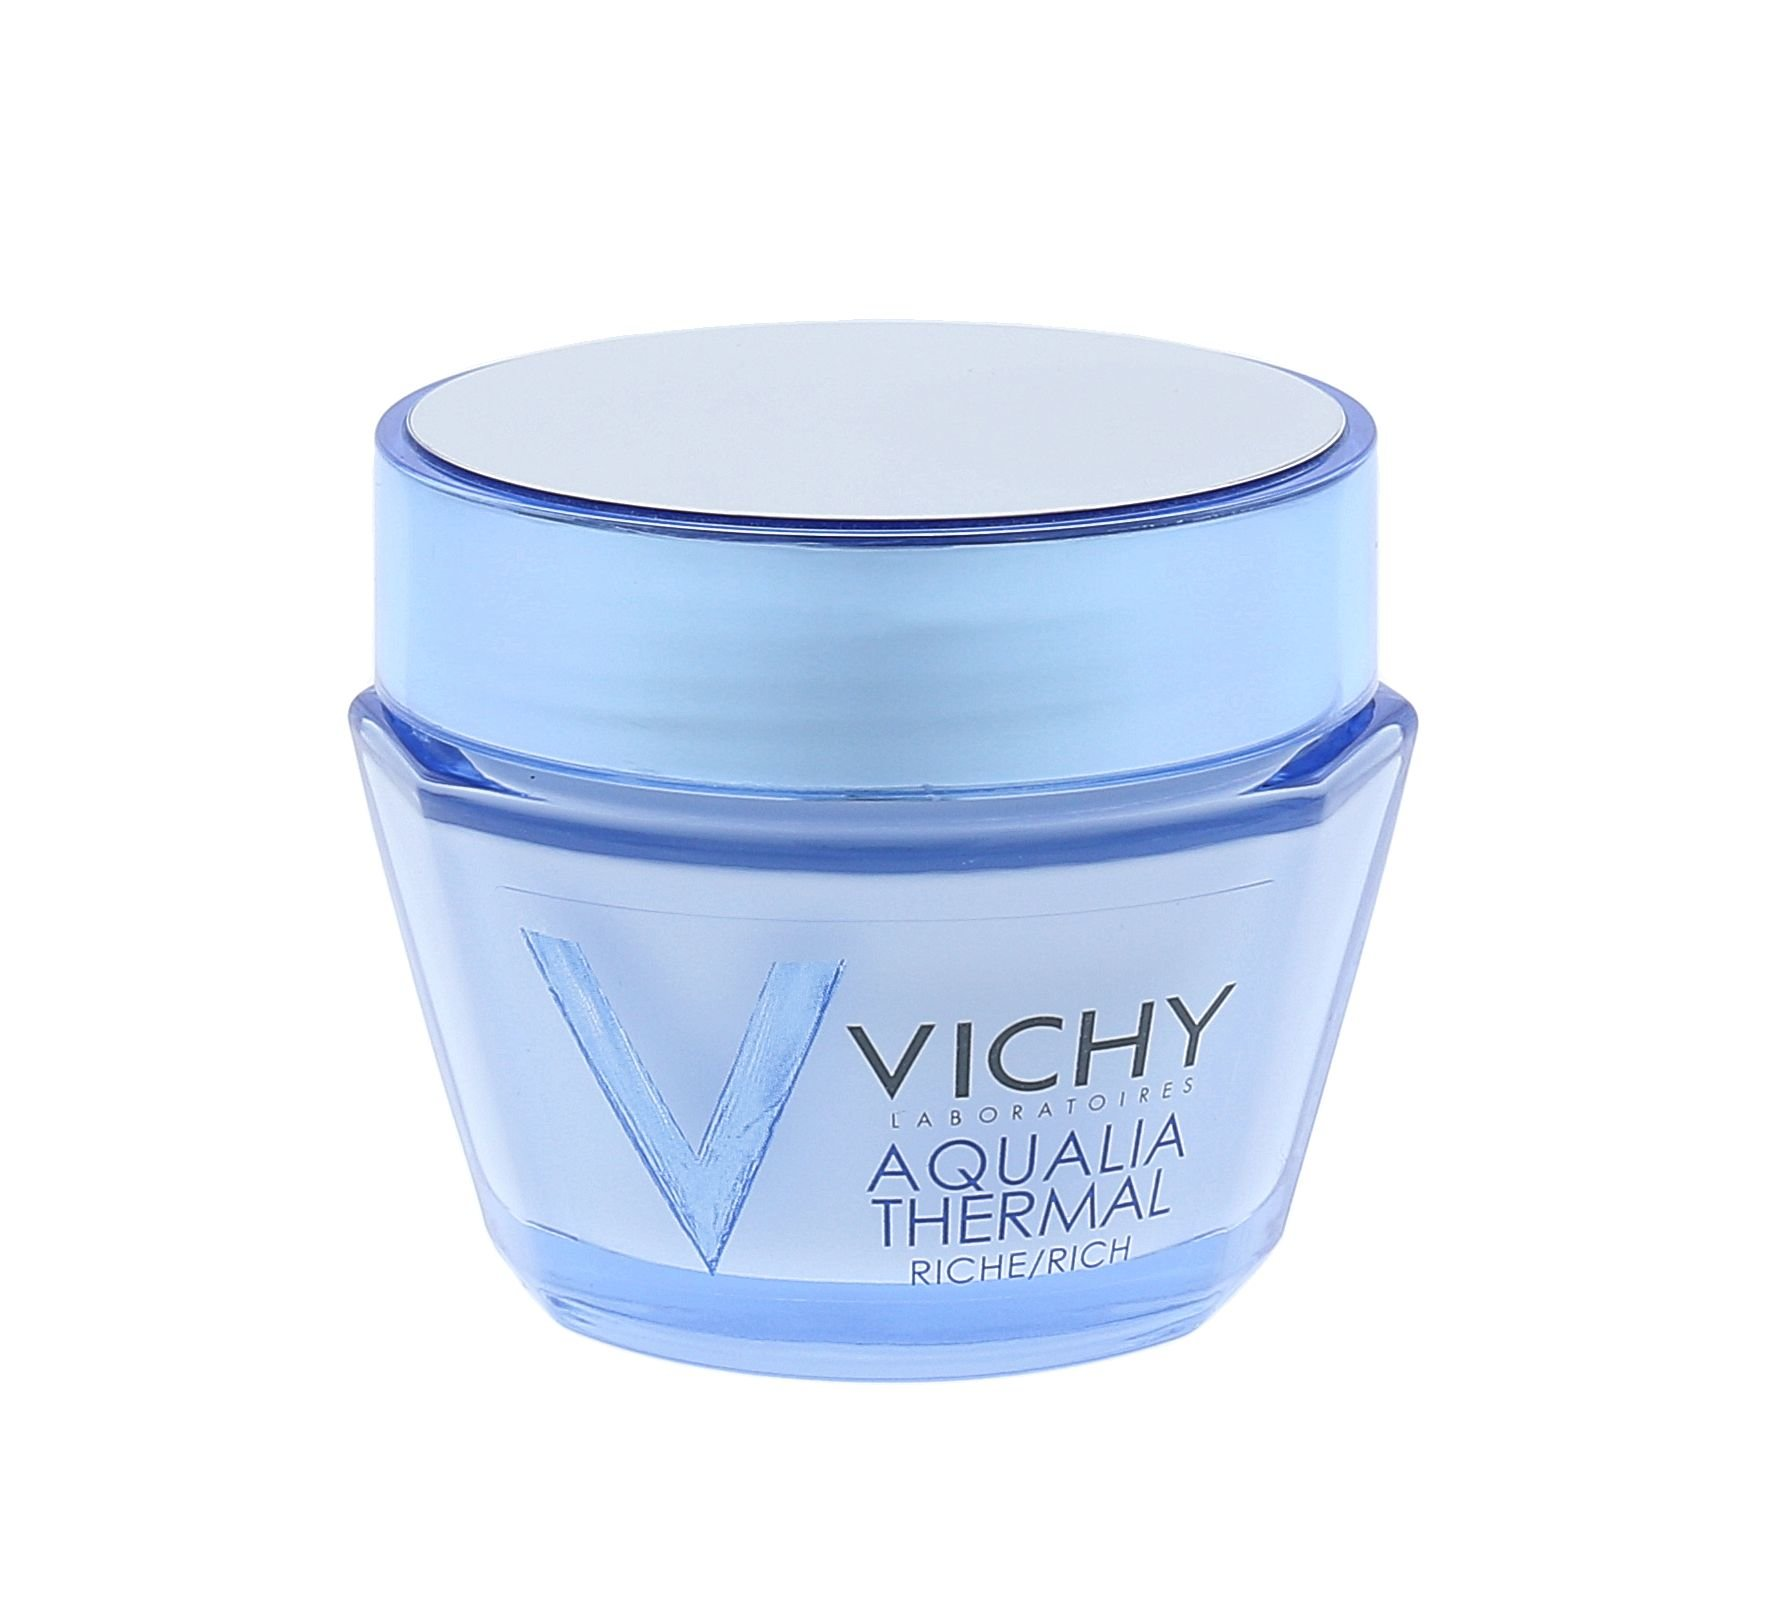 Vichy Aqualia Thermal Cosmetic 50ml